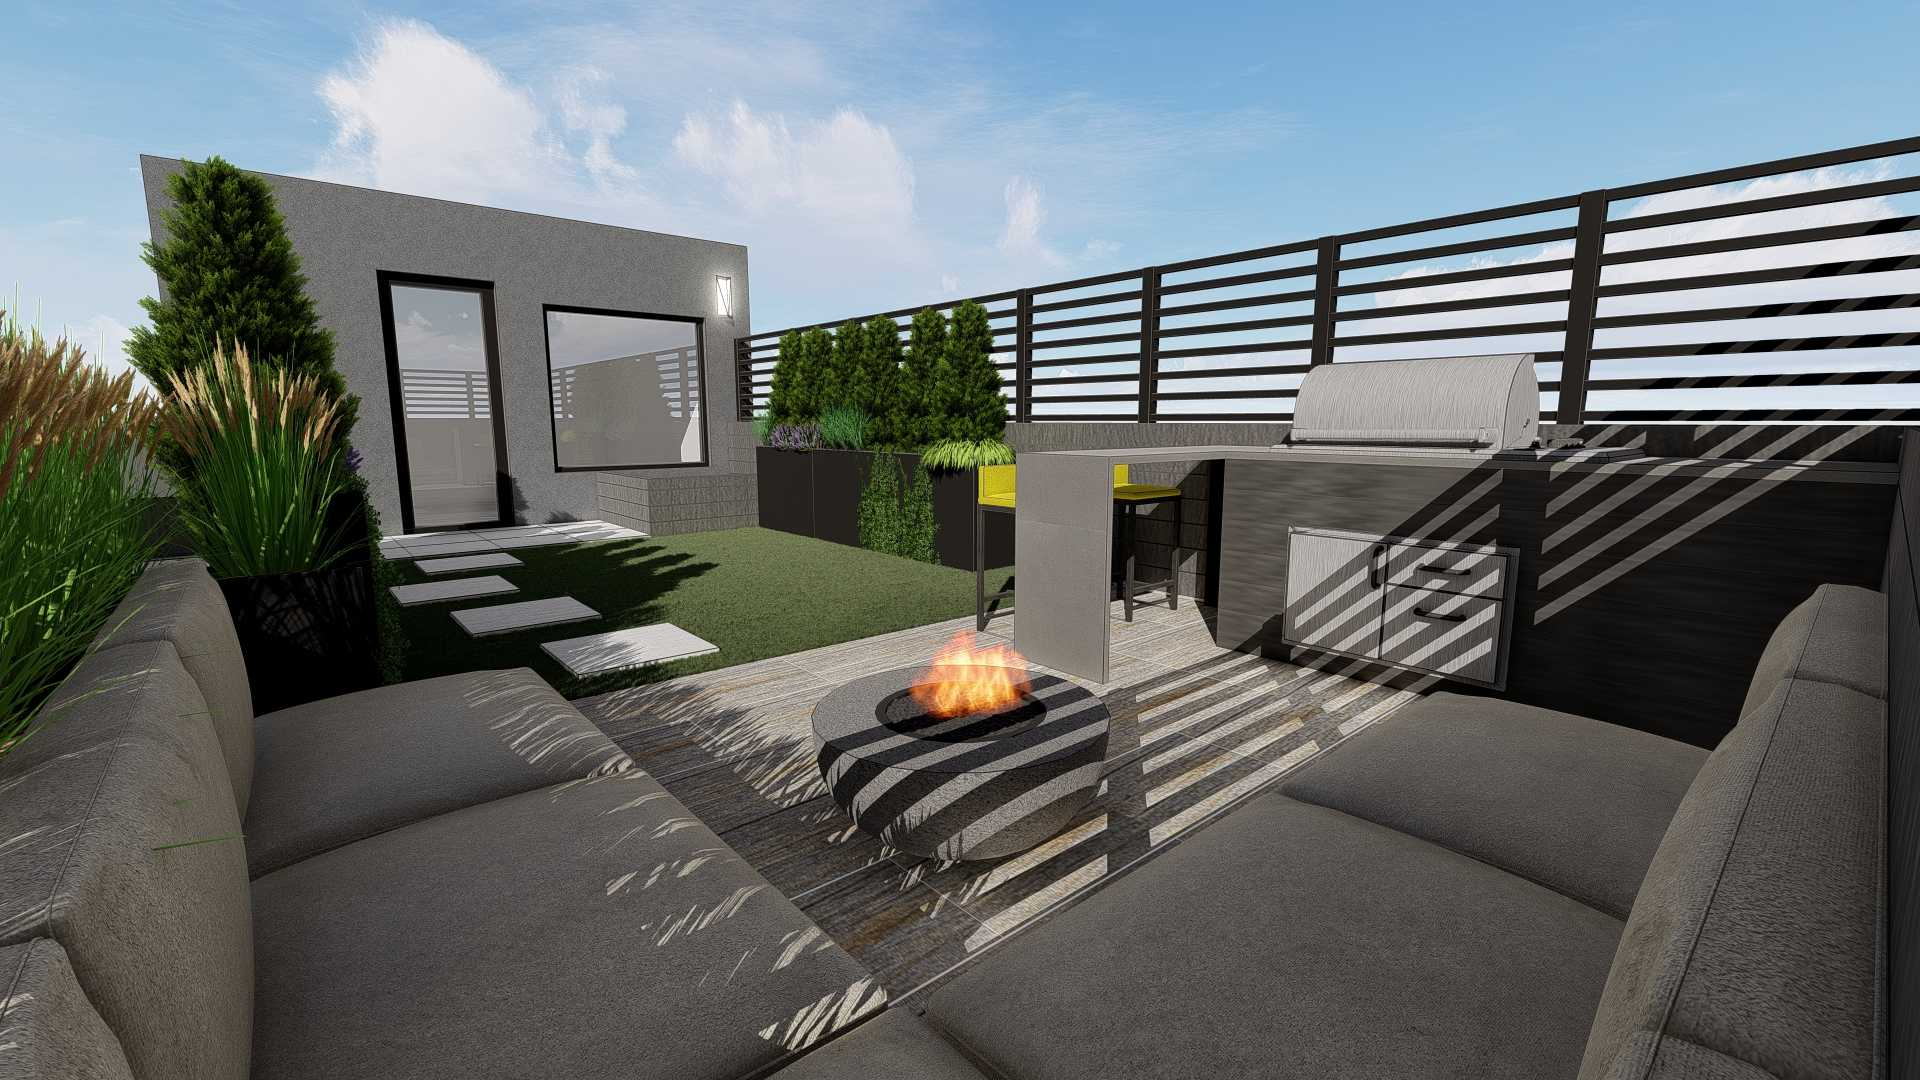 Sofa section, fire pit, outdoor BBQ grill, artificial turf grass